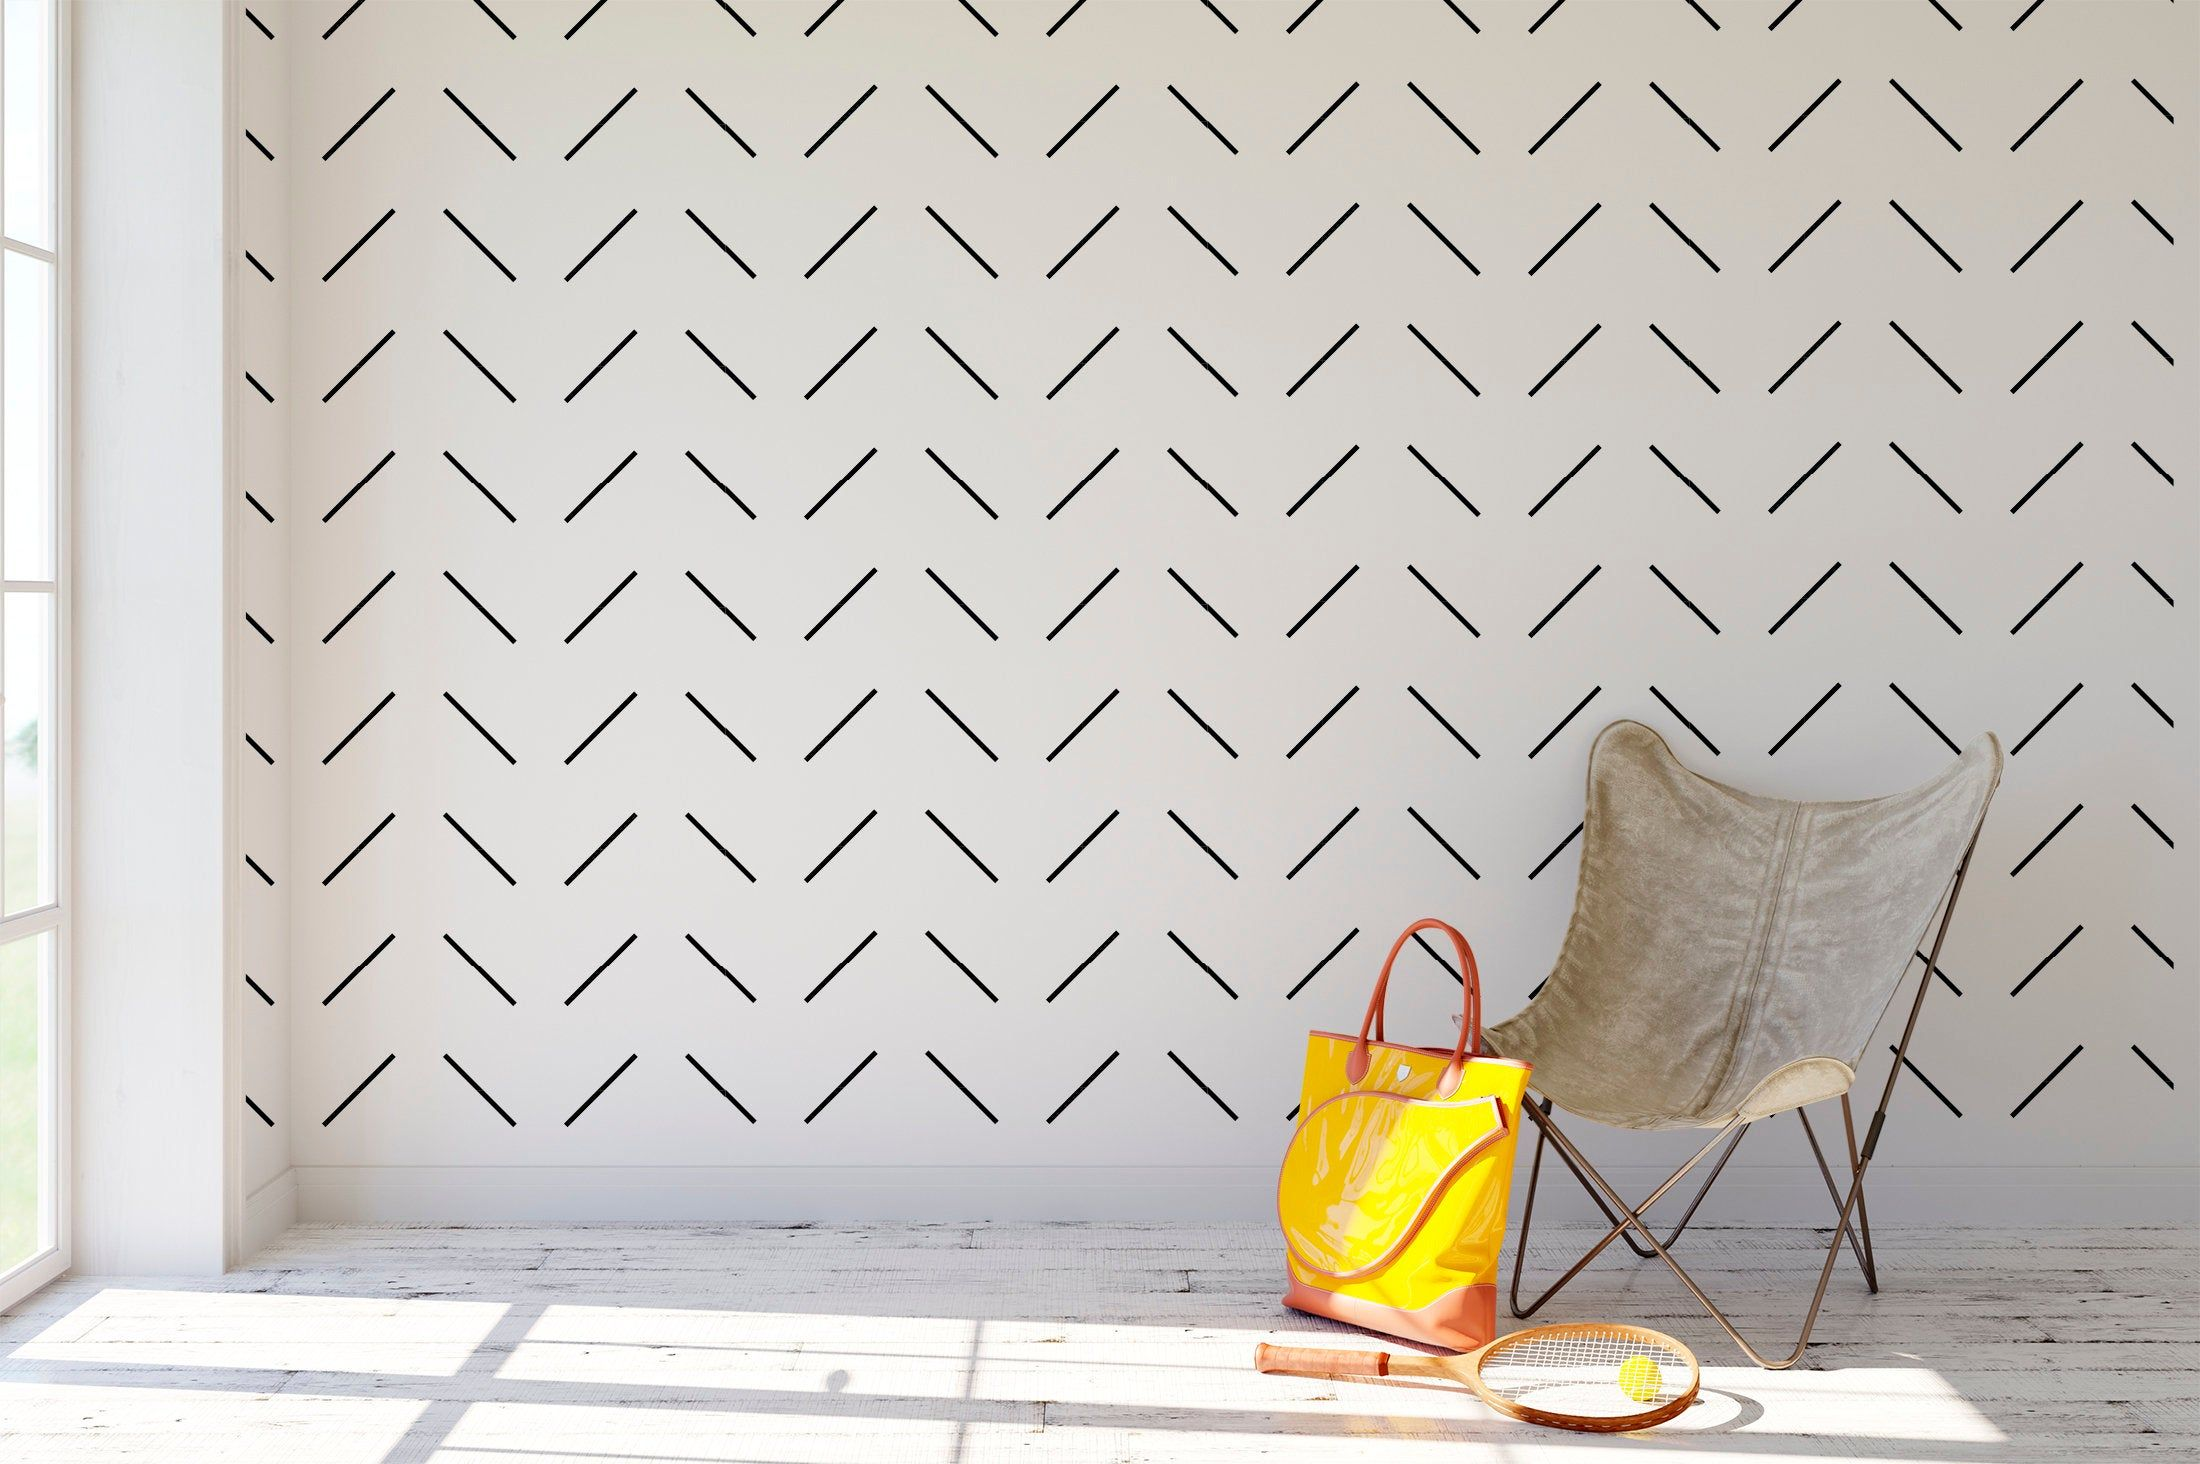 Removable Peel And Stick Wallpaper Peel And Stick Wallpaper Etsy Peel And Stick Wallpaper Wall Decor Vinyl Wallpaper